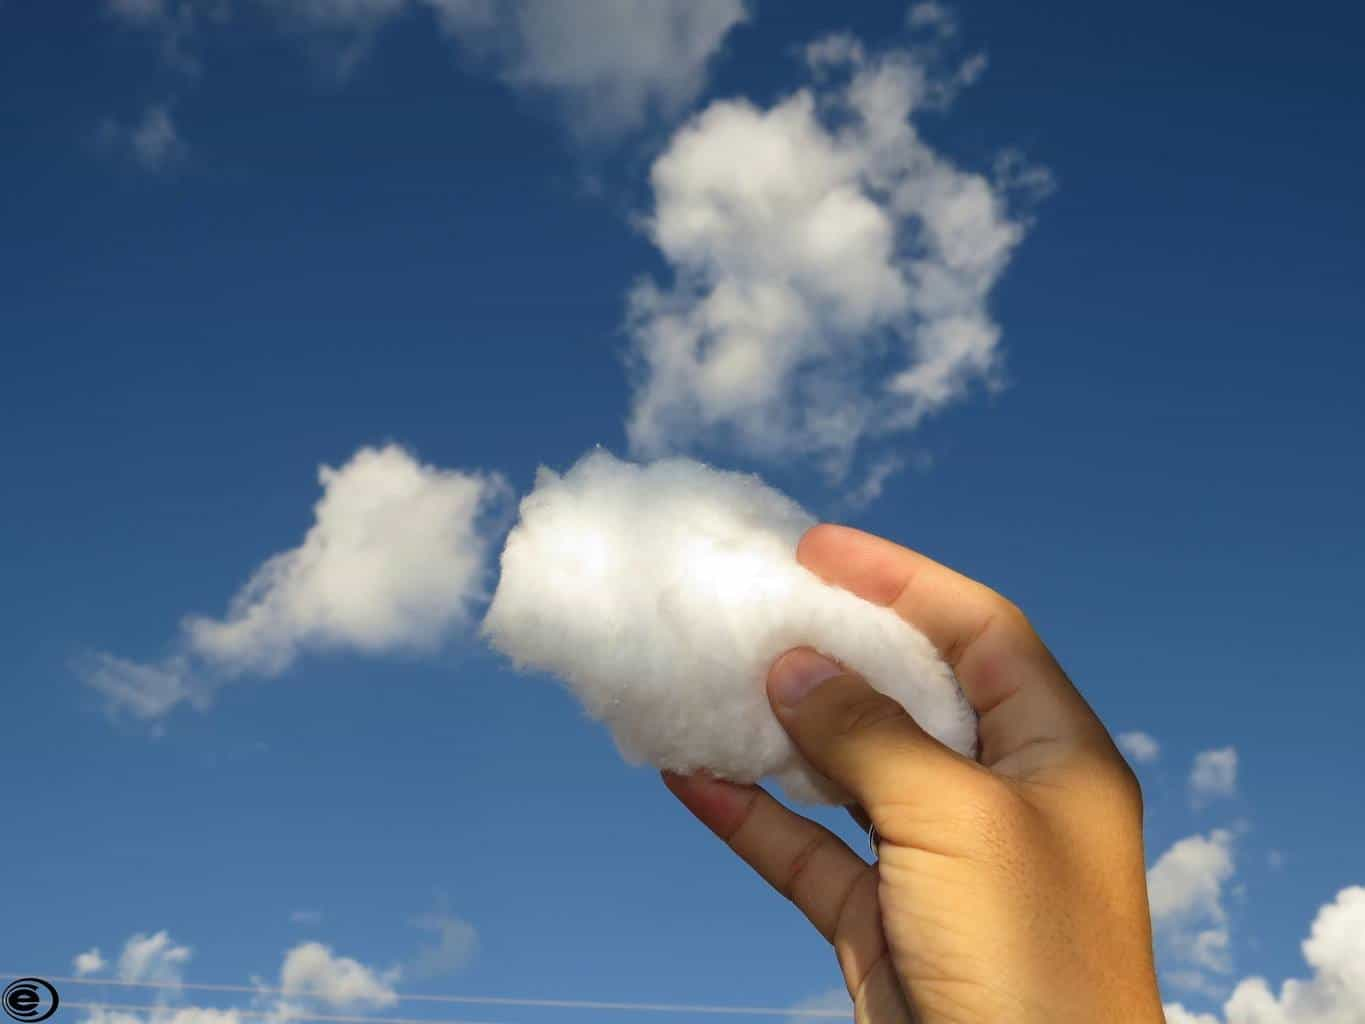 Here in Brazil I am always in touch with the clouds